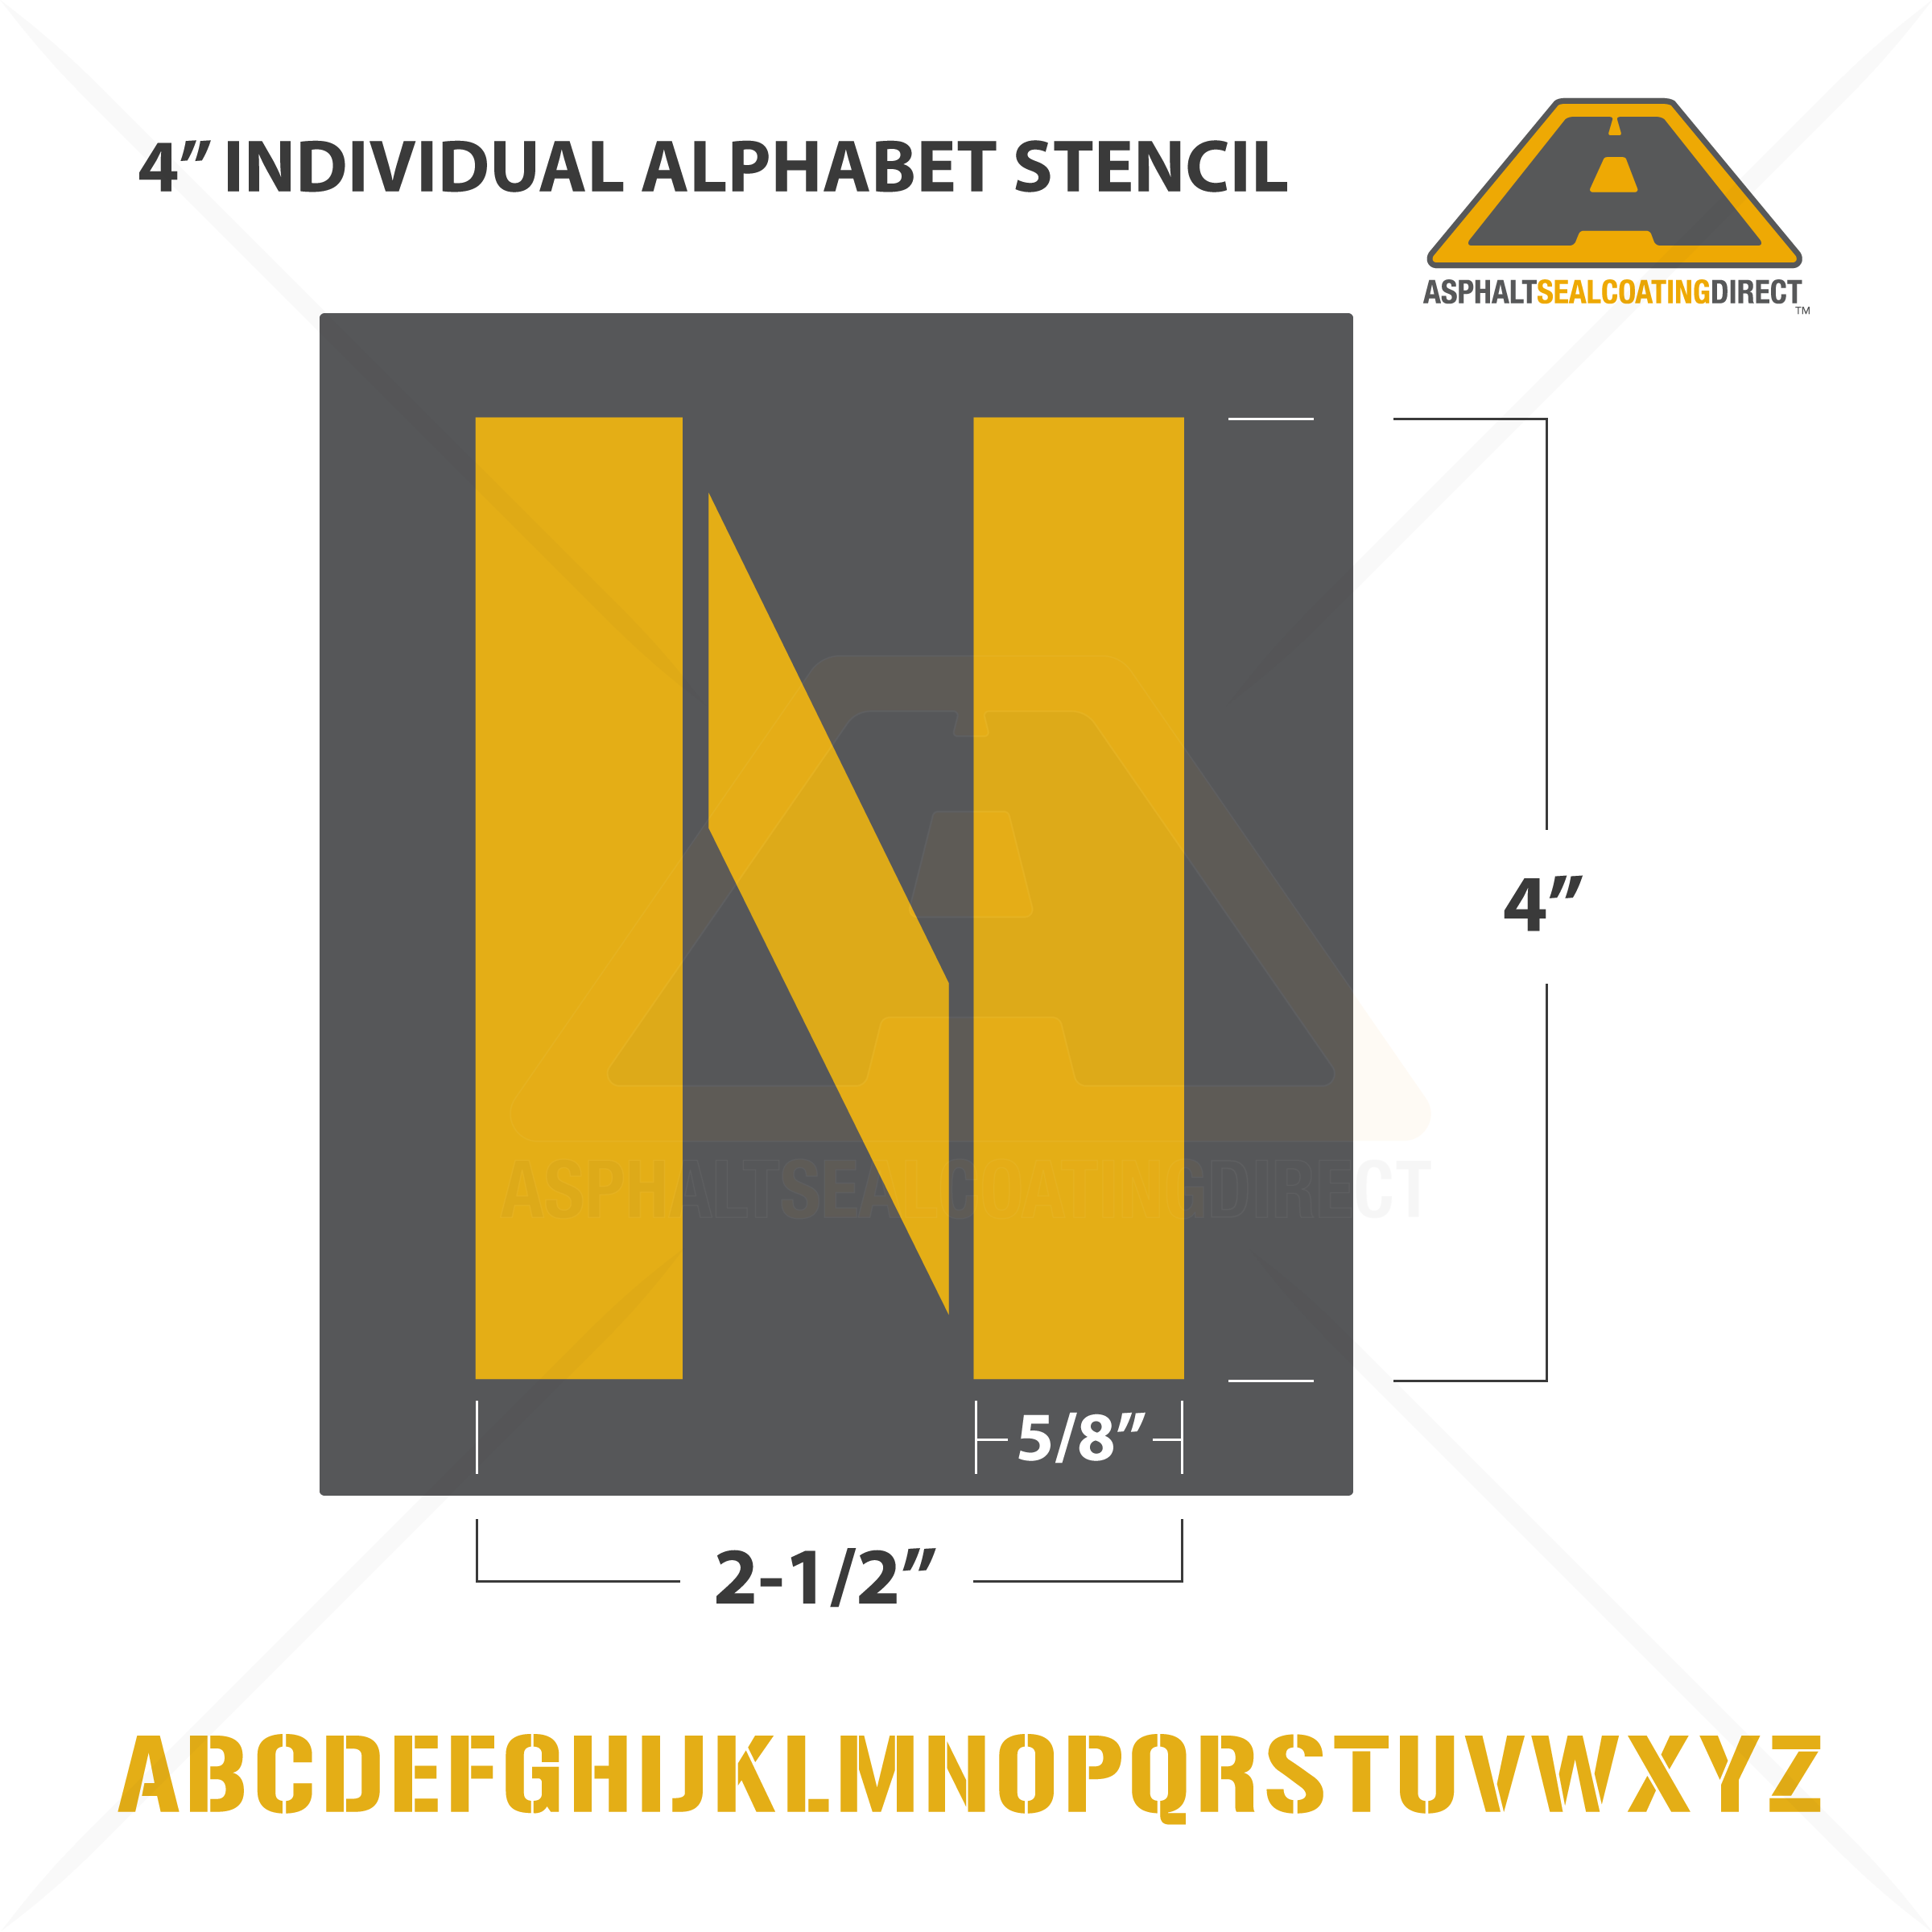 image of 4 individual alphabet letter stencil